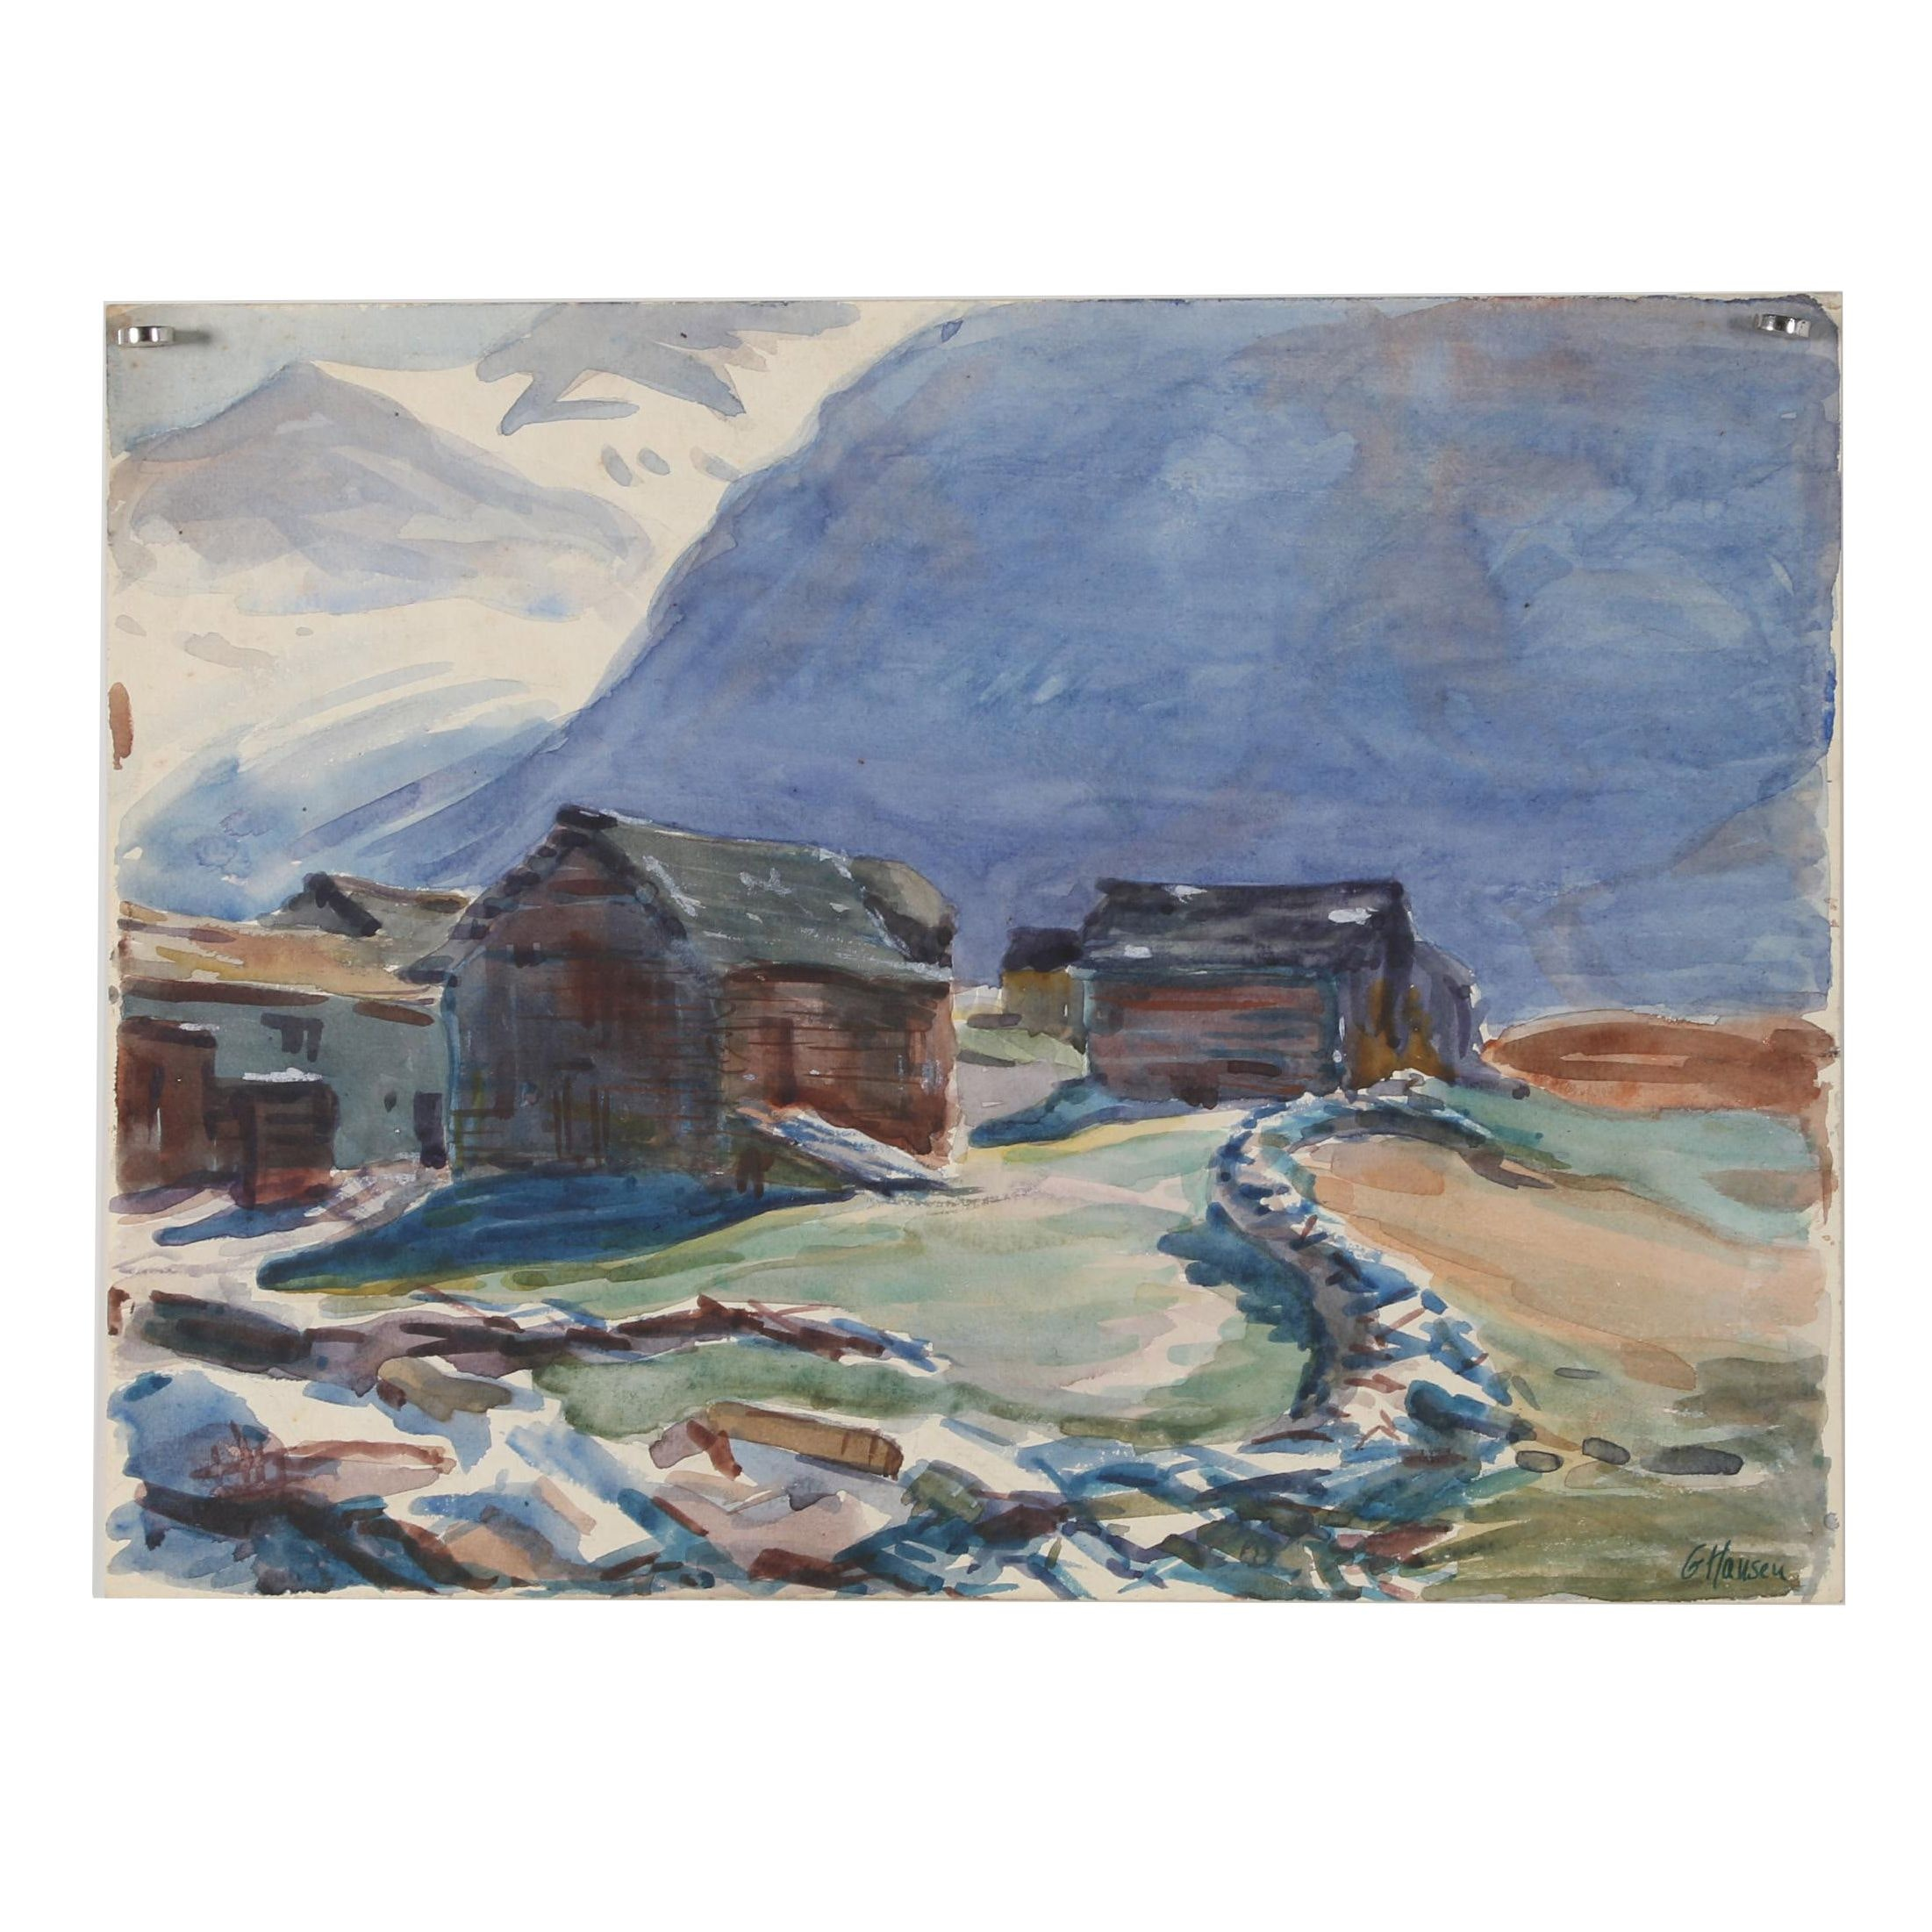 Gordon Hansen Watercolor Painting of Mountain Village